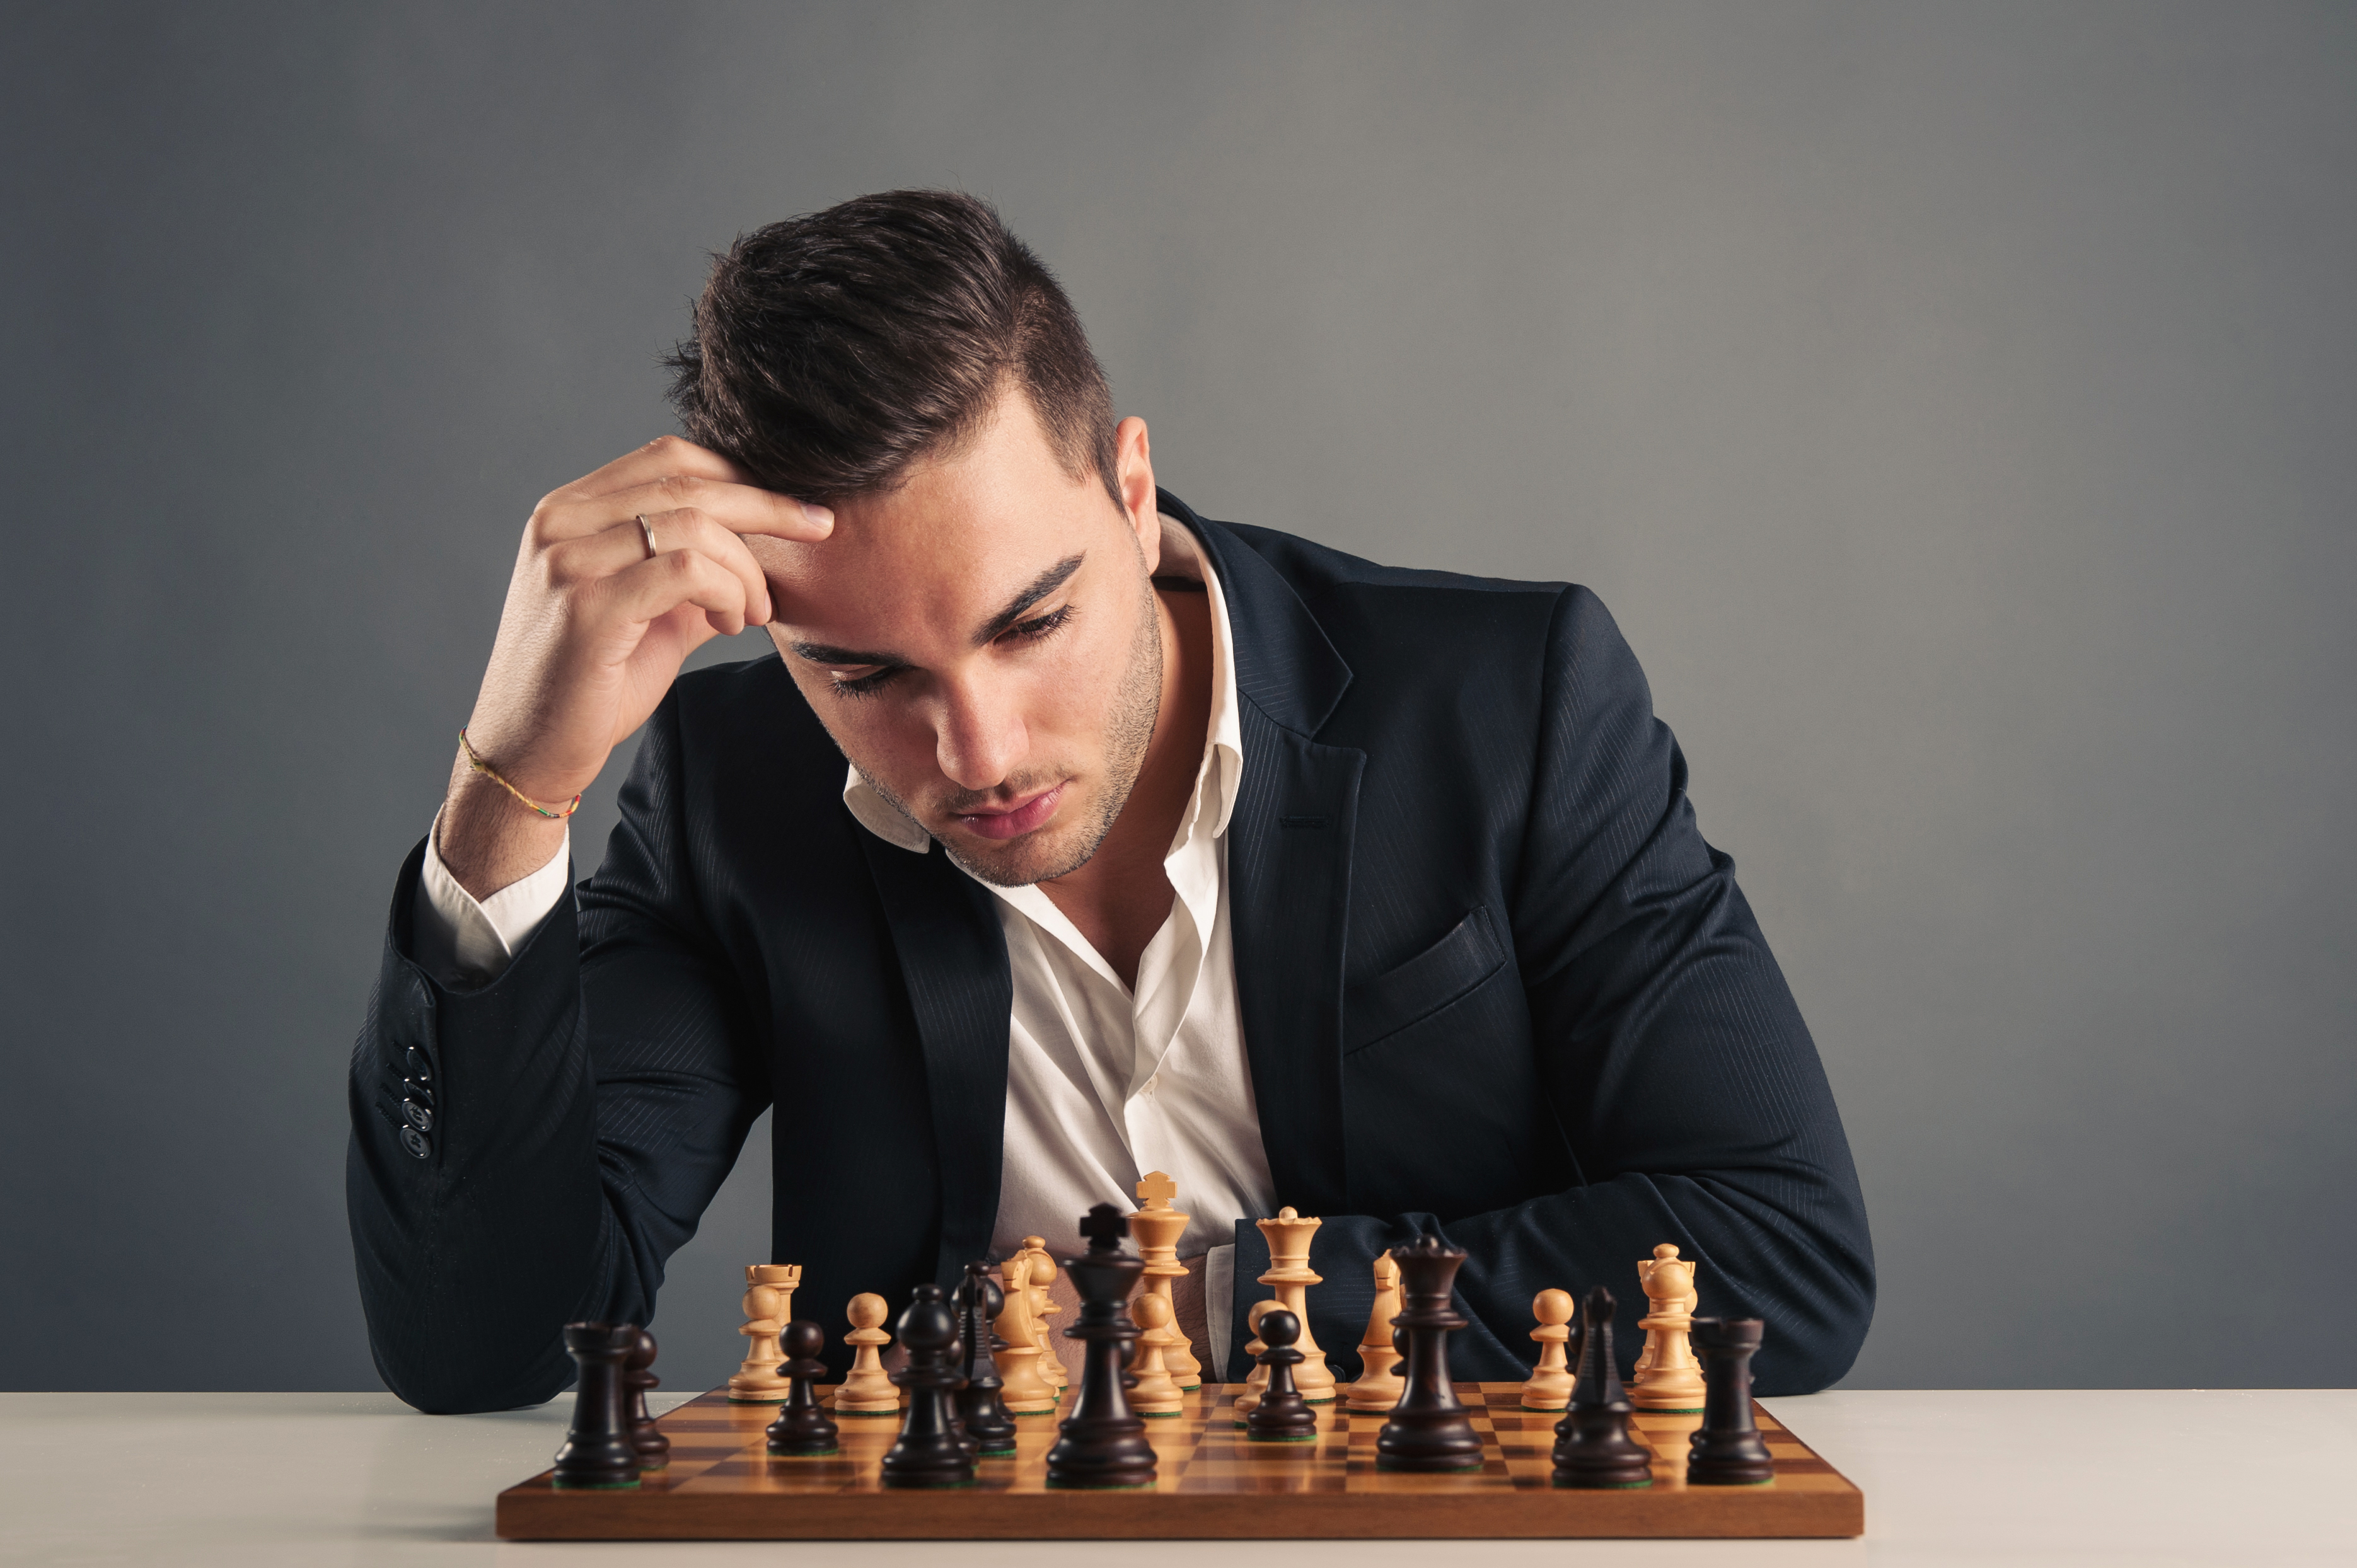 Man playing chess, isolated on dark background.